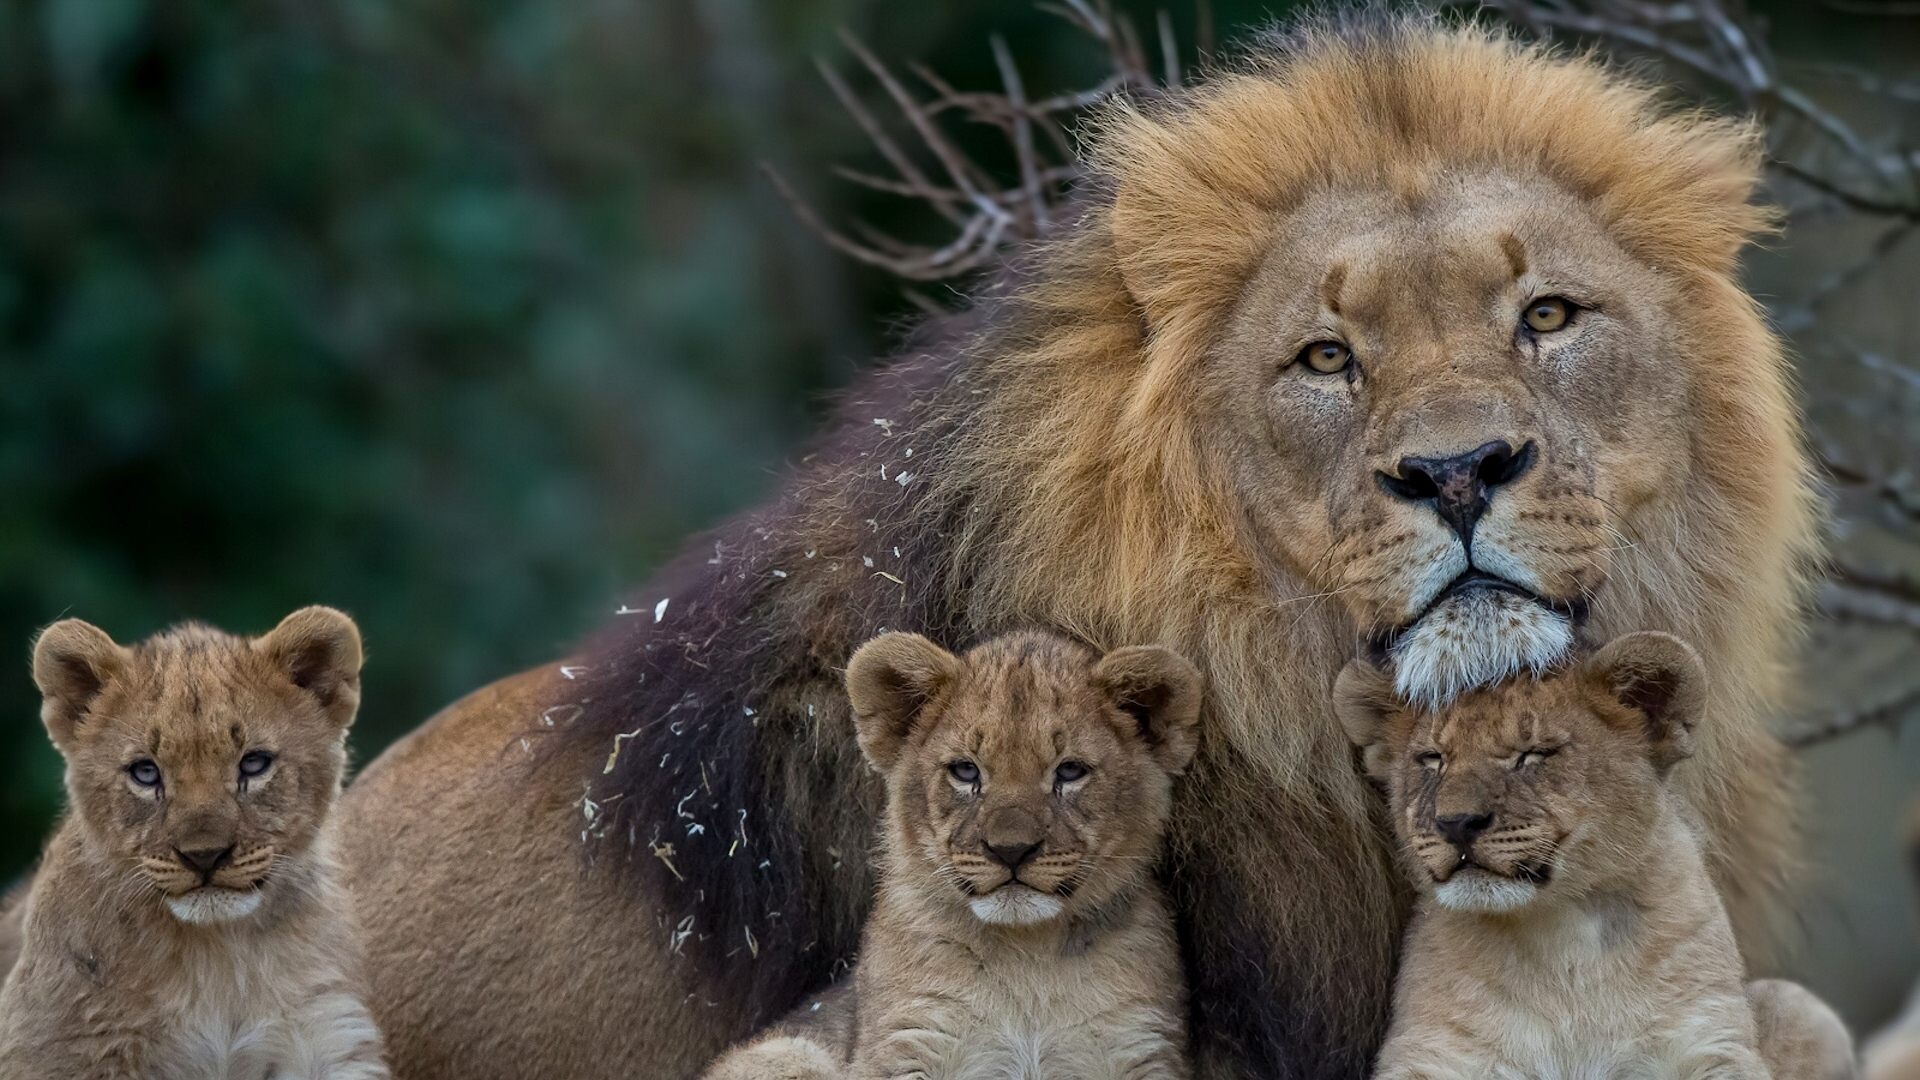 Download Wallpaper 1920x1080 Lion Lioness Young Family Predators Full Hd 1080p Hd Background